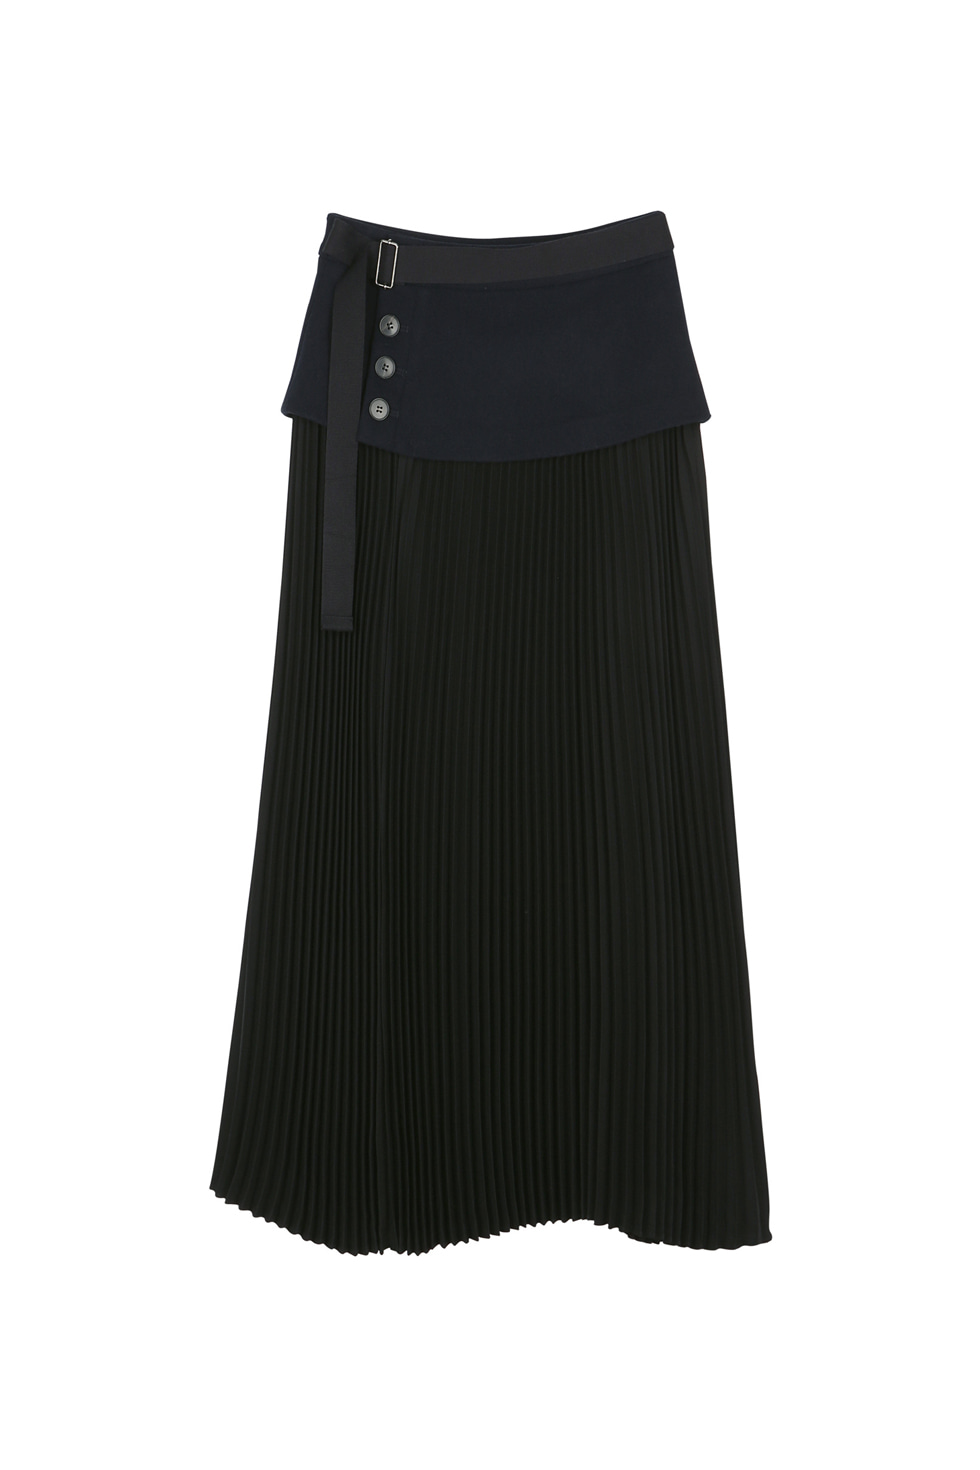 WOOL FLAP PLEATS SKIRT